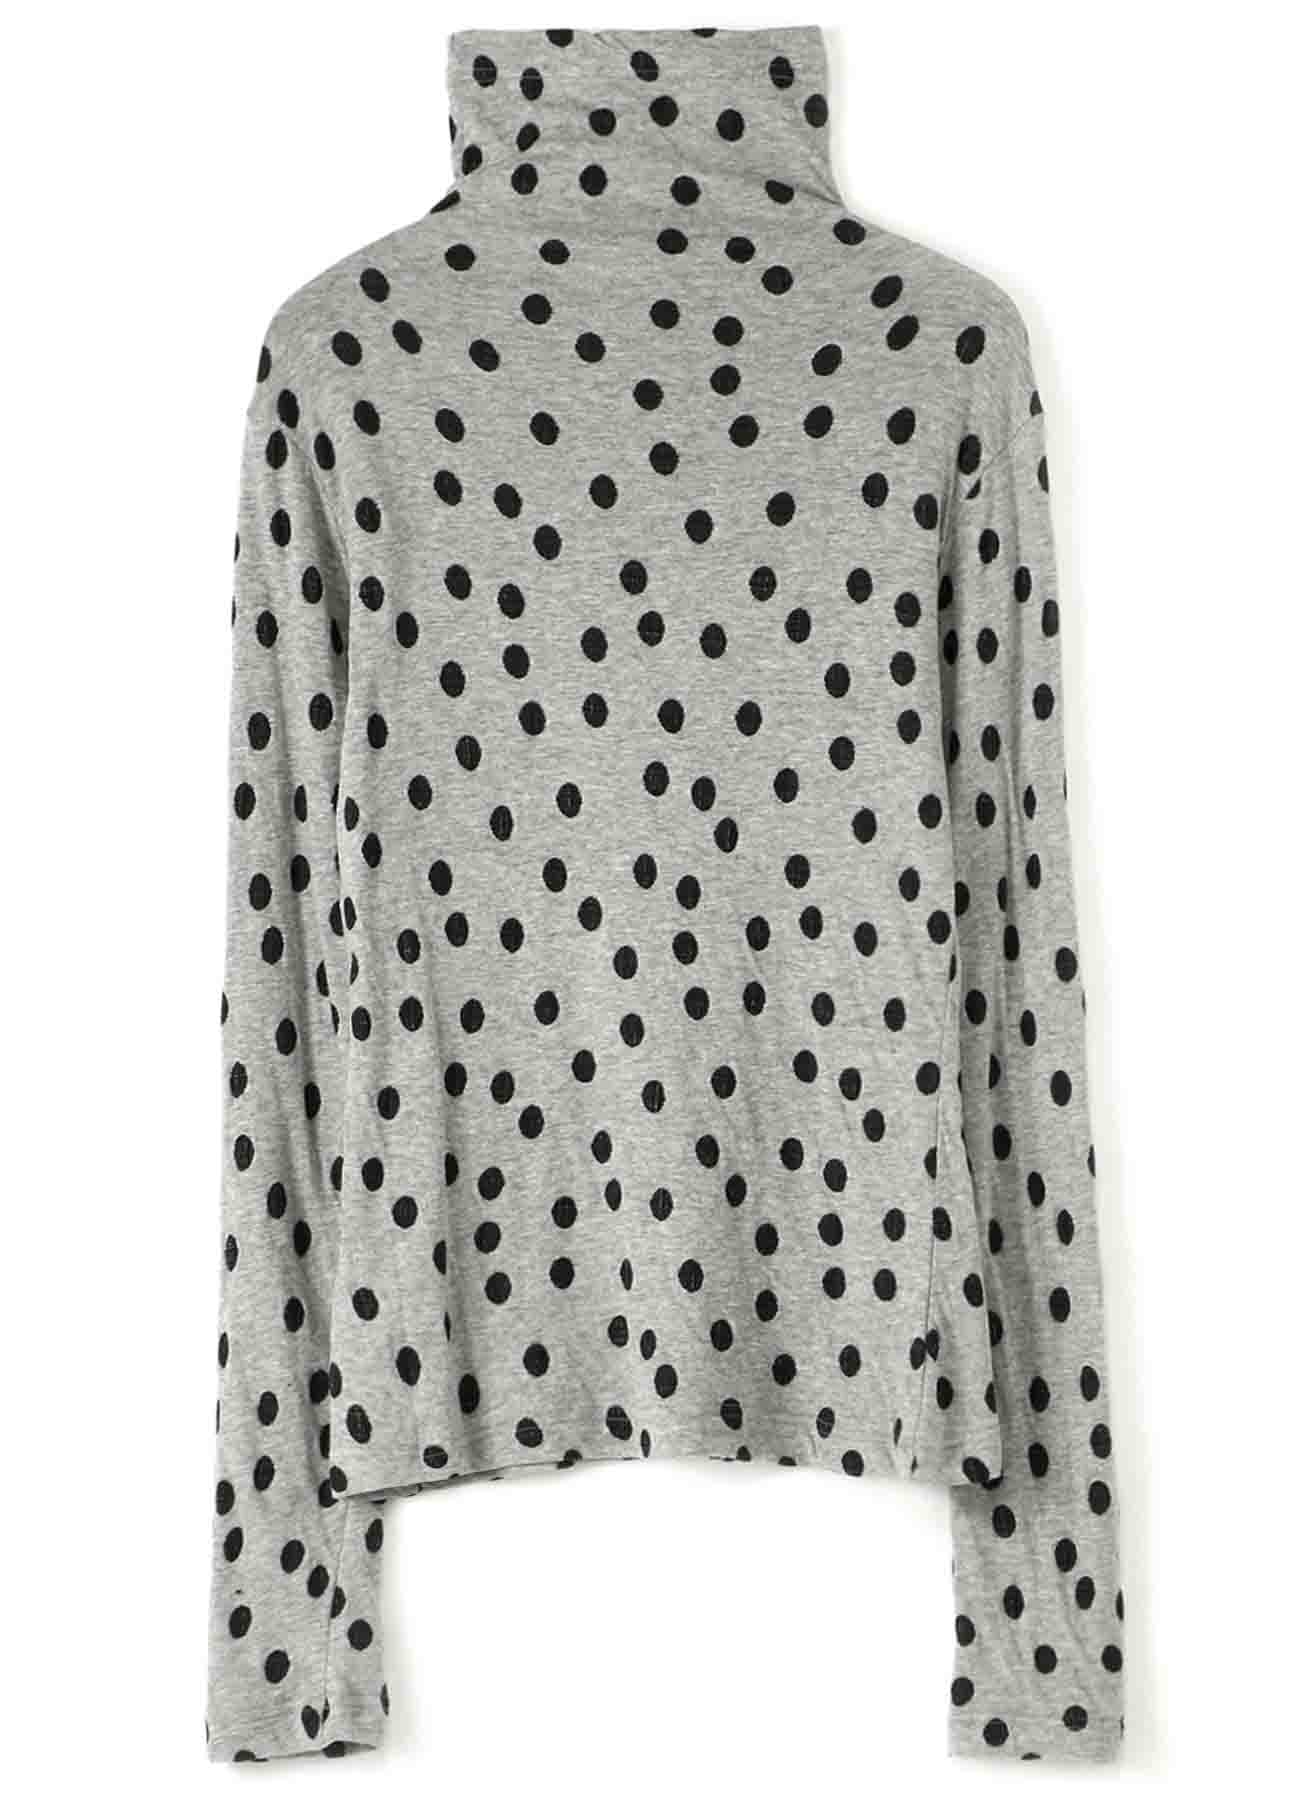 LYOCELL COTTON DOT DUAL-LAYER JACQUARD FRONT COLLARED DECO LONG SLEEVE T-SHIRT